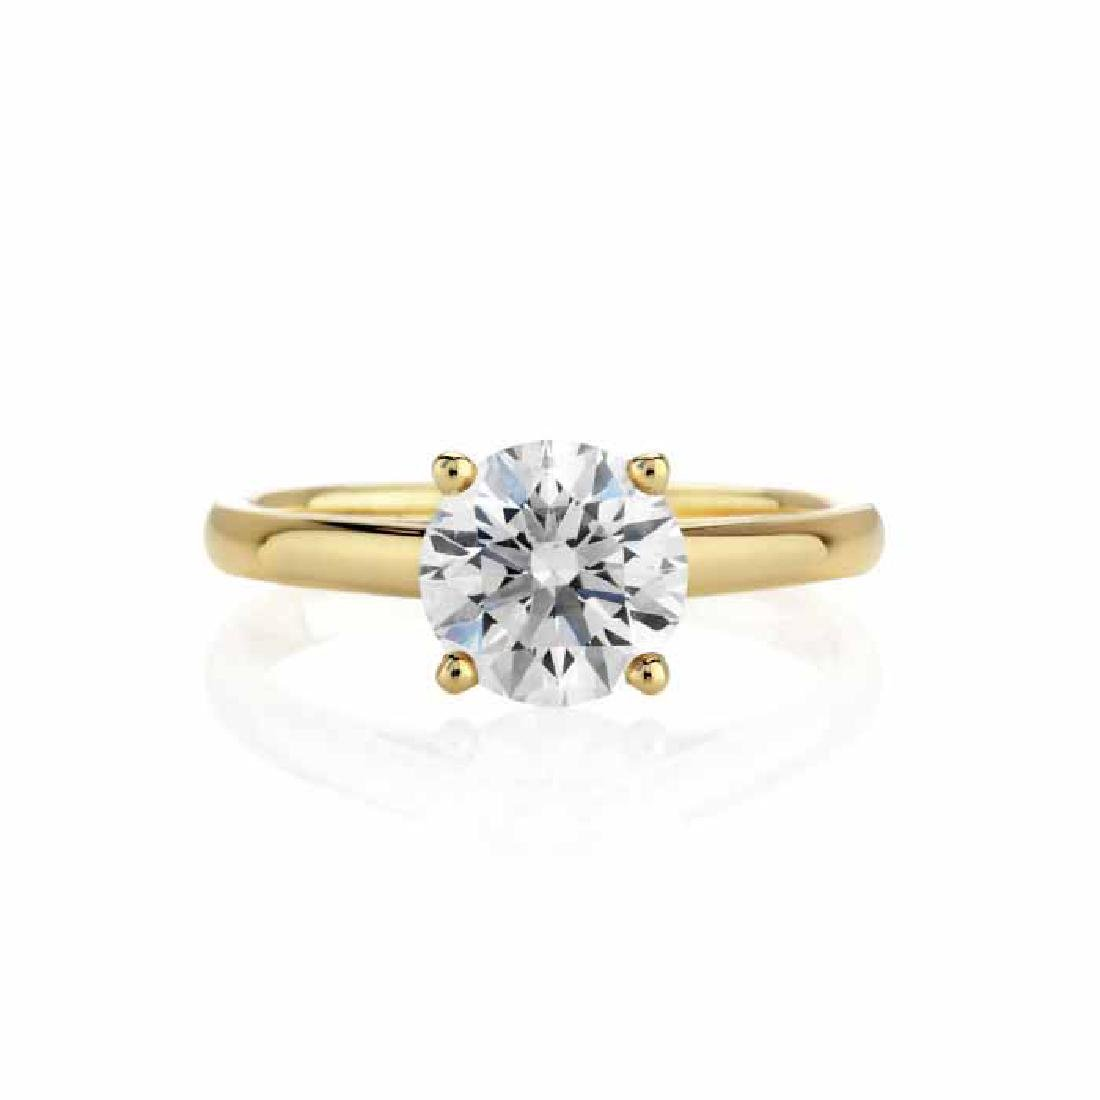 CERTIFIED 0.51 CTW I/VS1 ROUND DIAMOND SOLITAIRE RING I